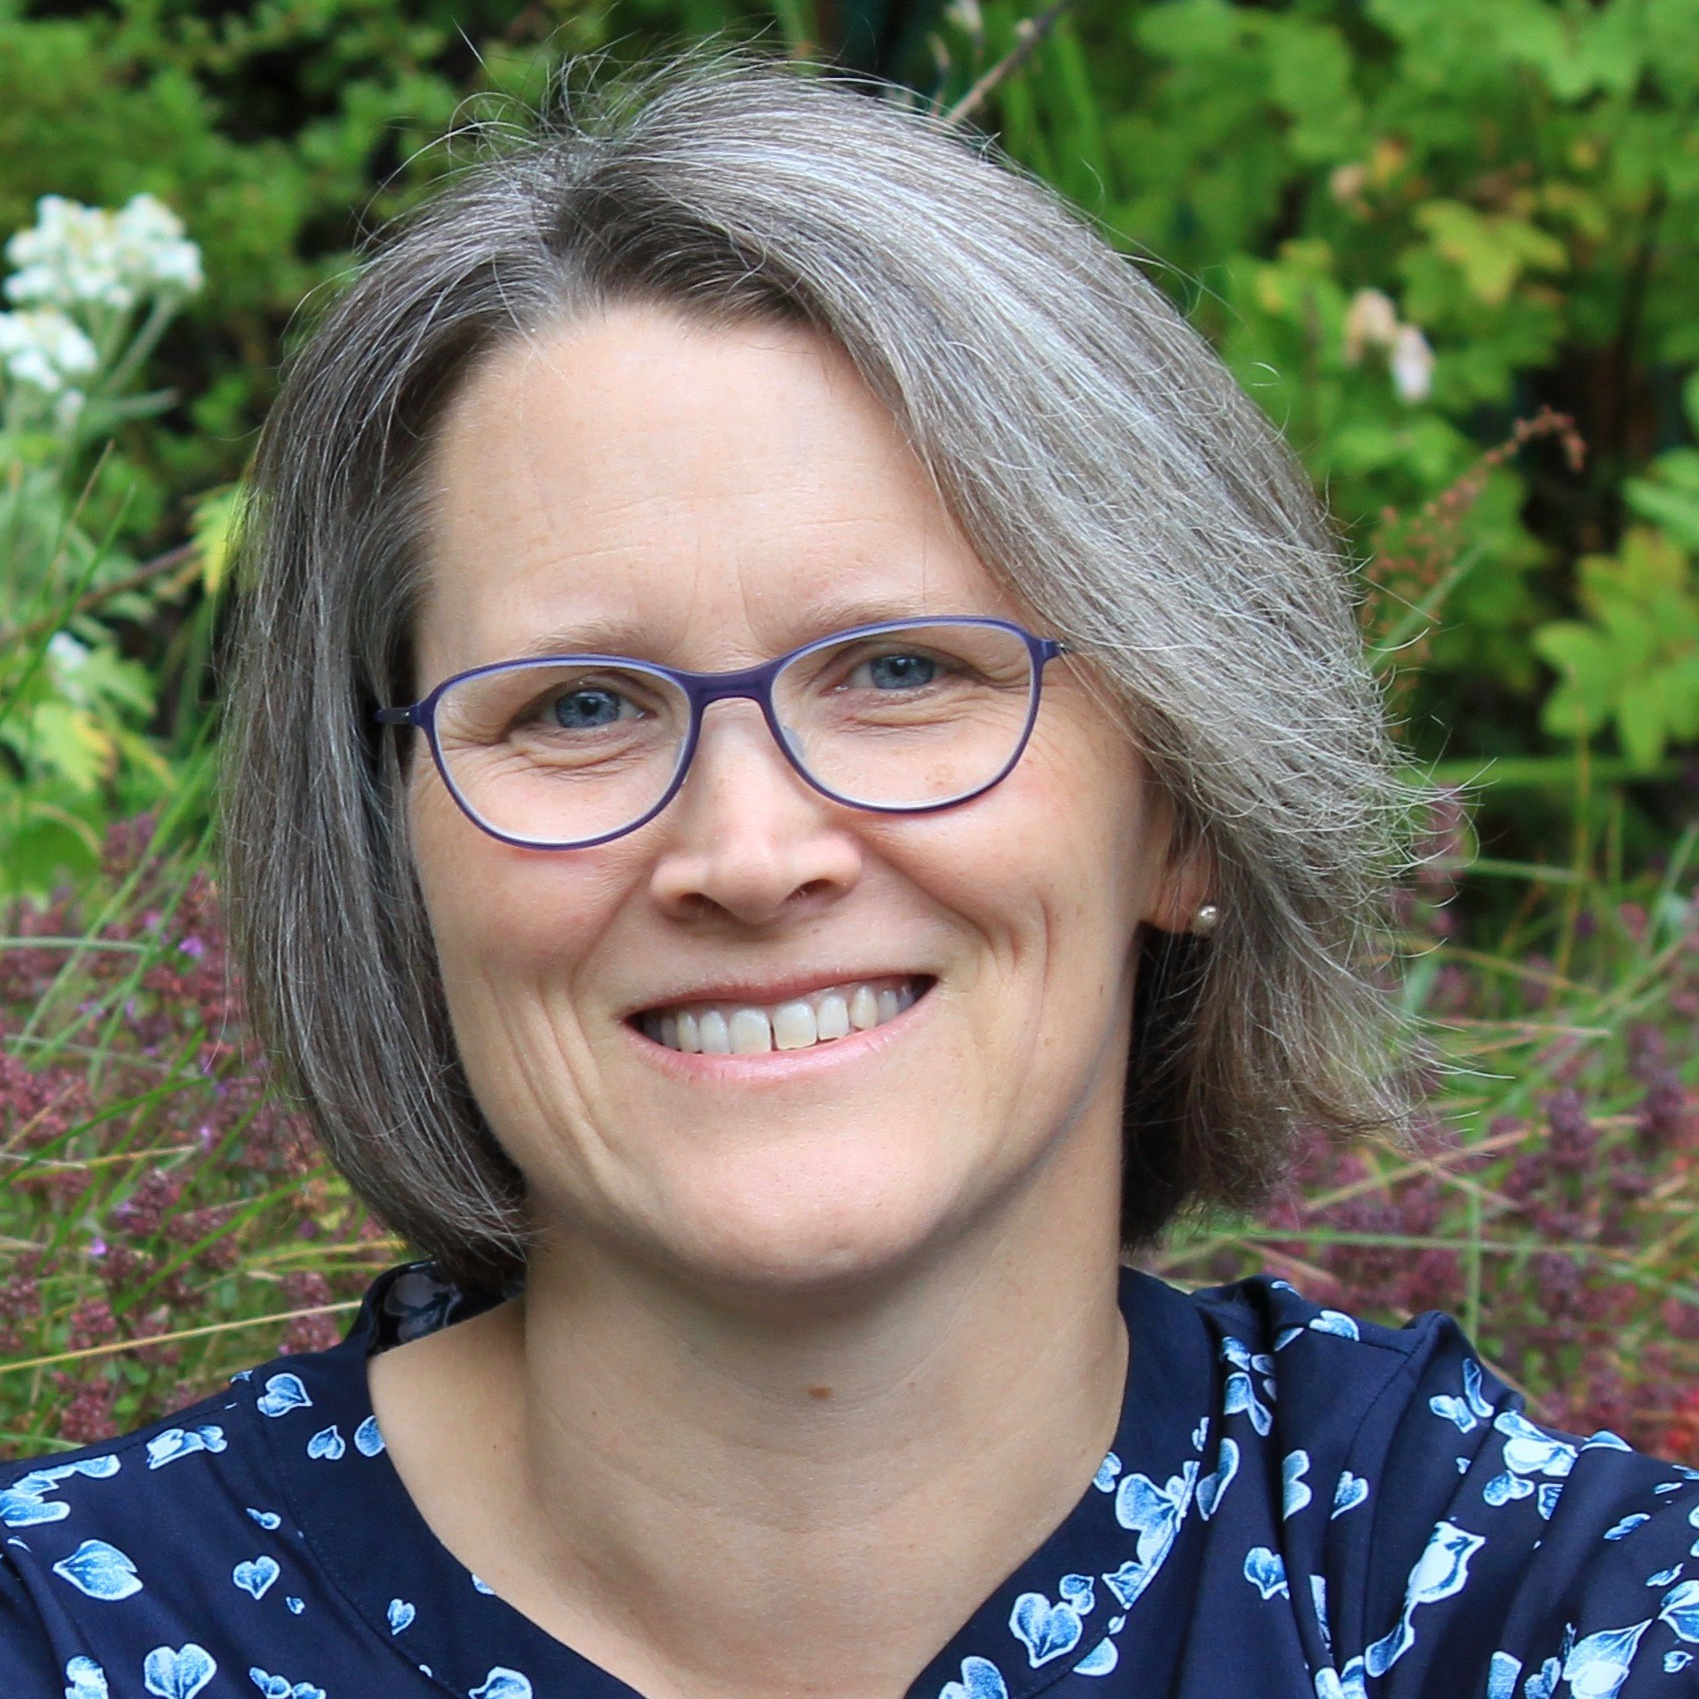 Claudia Haines   As a youth services librarian in Homer, Alaska, Claudia Haines connects children and their families with high quality media of all kinds that both reflect their diverse experiences and offer them a window into worlds beyond their own. She also trains other children's librarians in the use of new media to support literacy.   @ClaudiaHaines